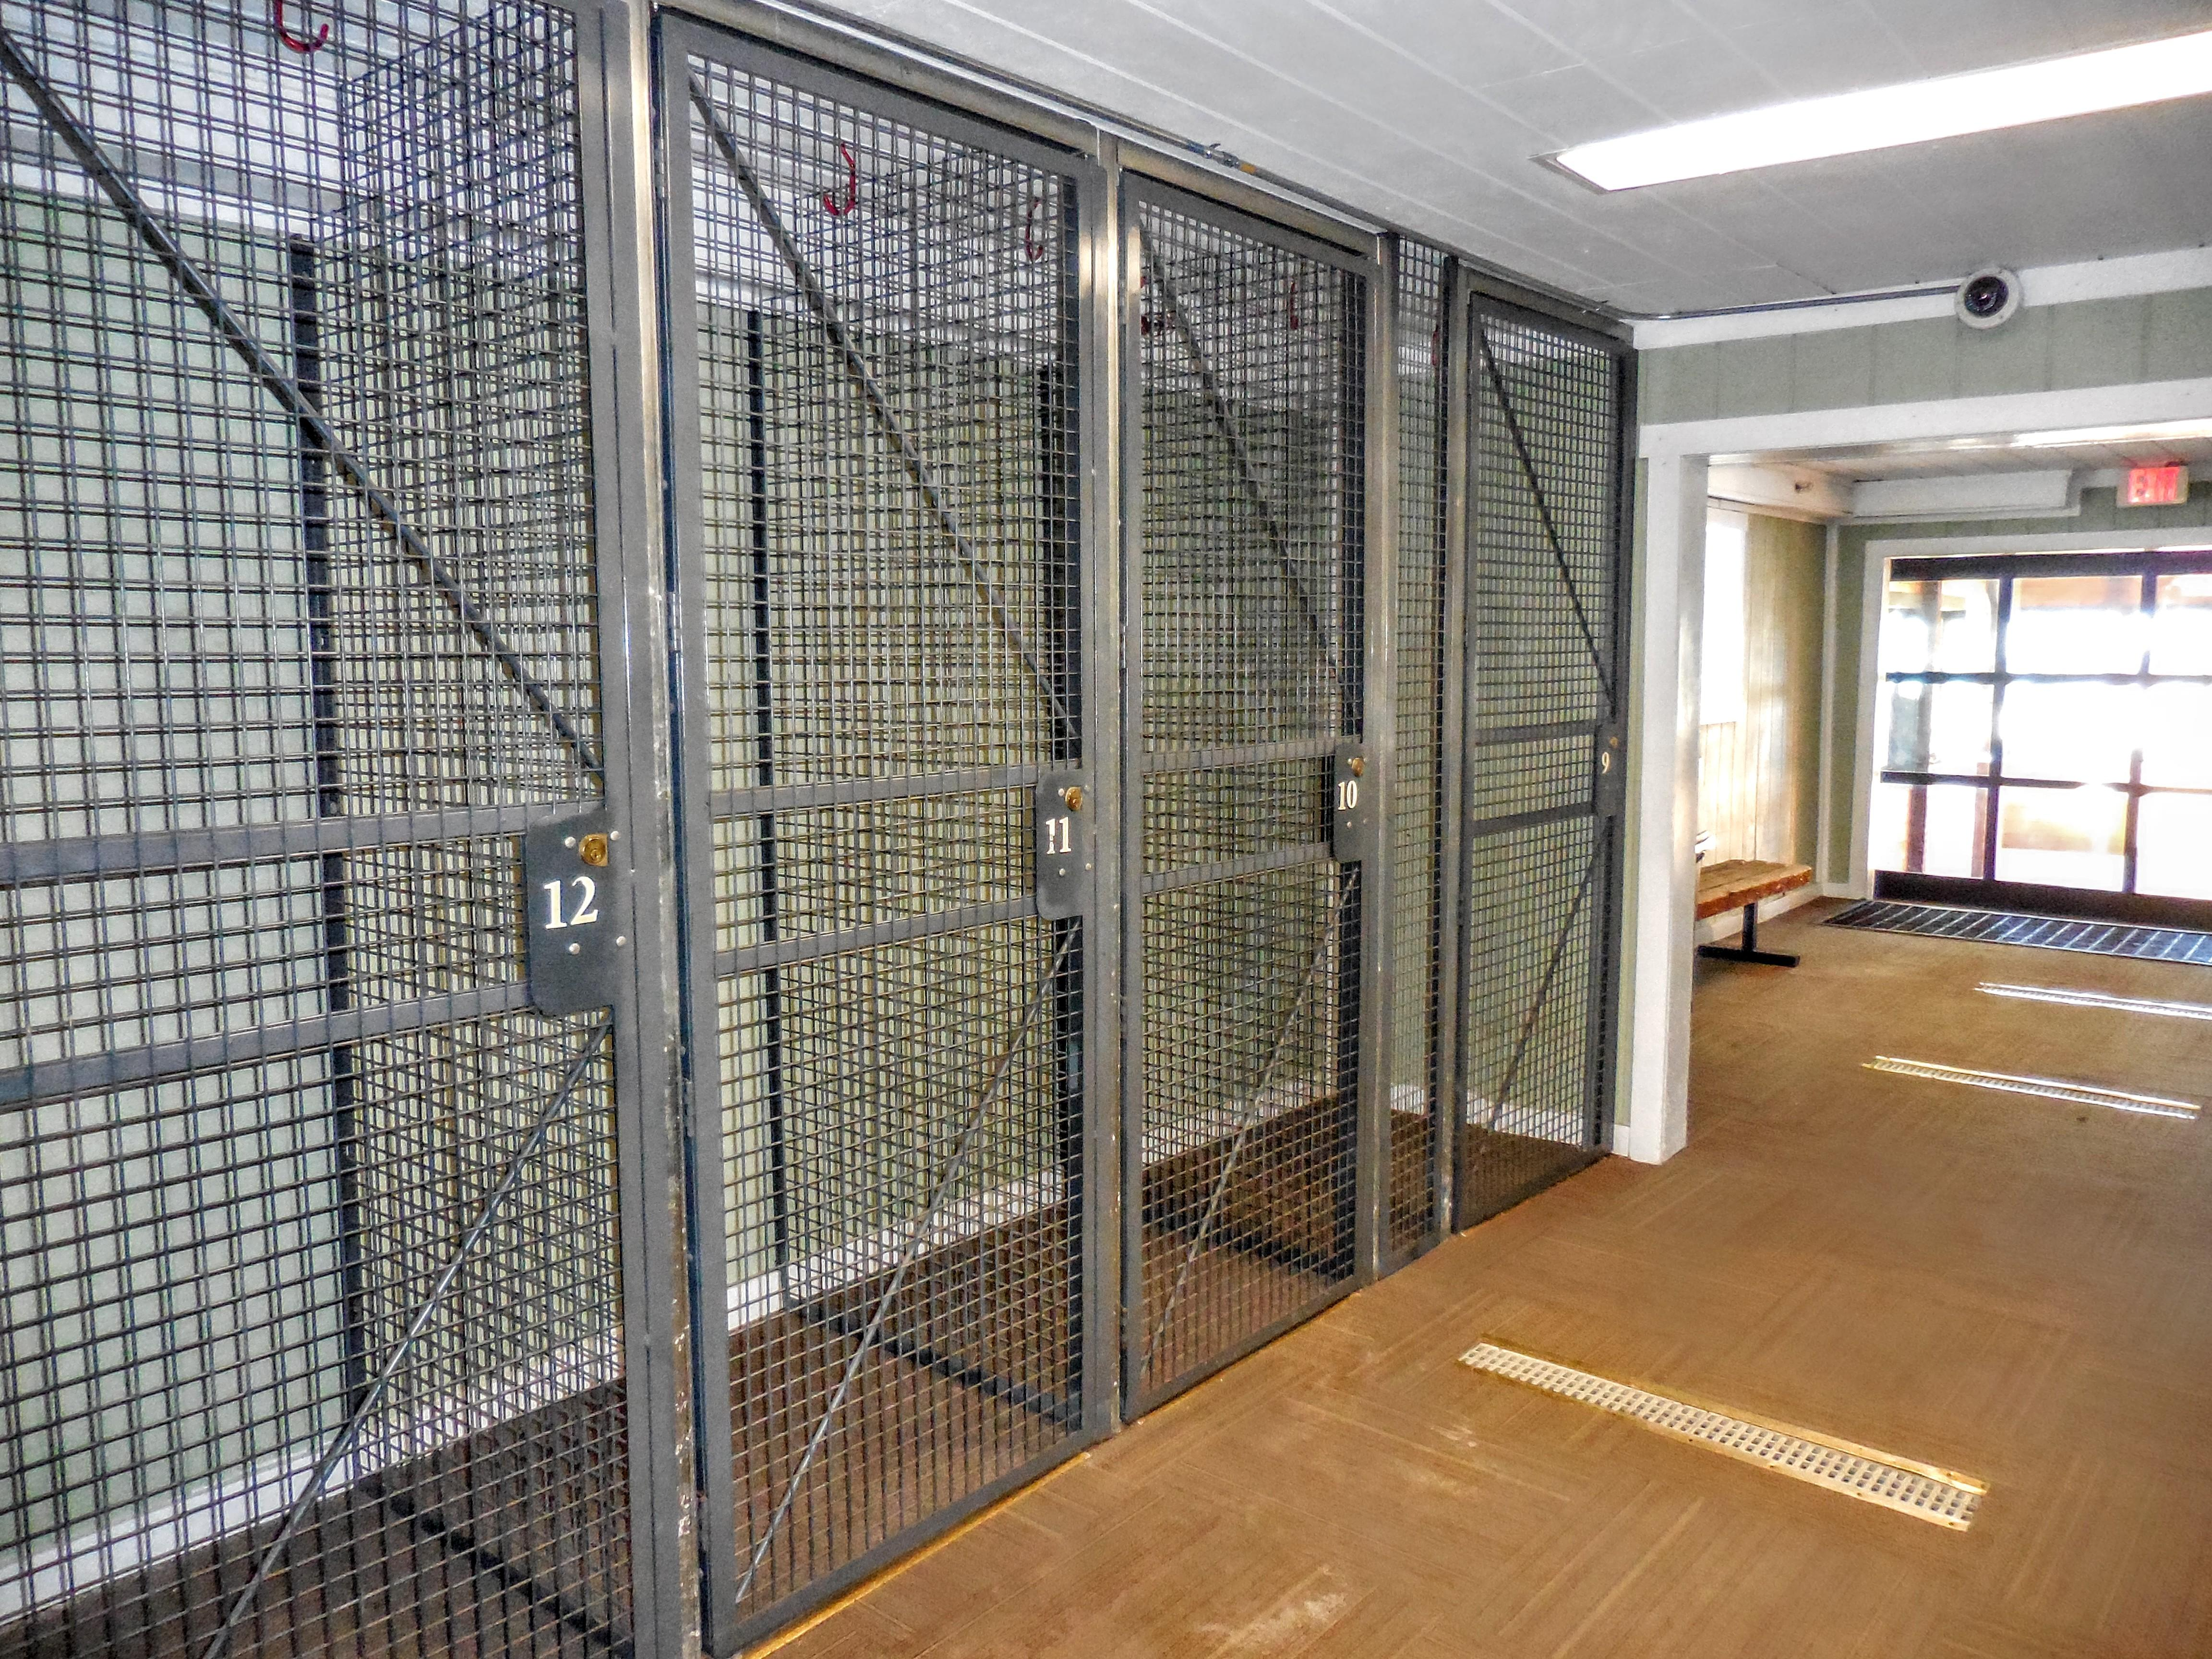 Ski/Bike lockers available for rent on first floor